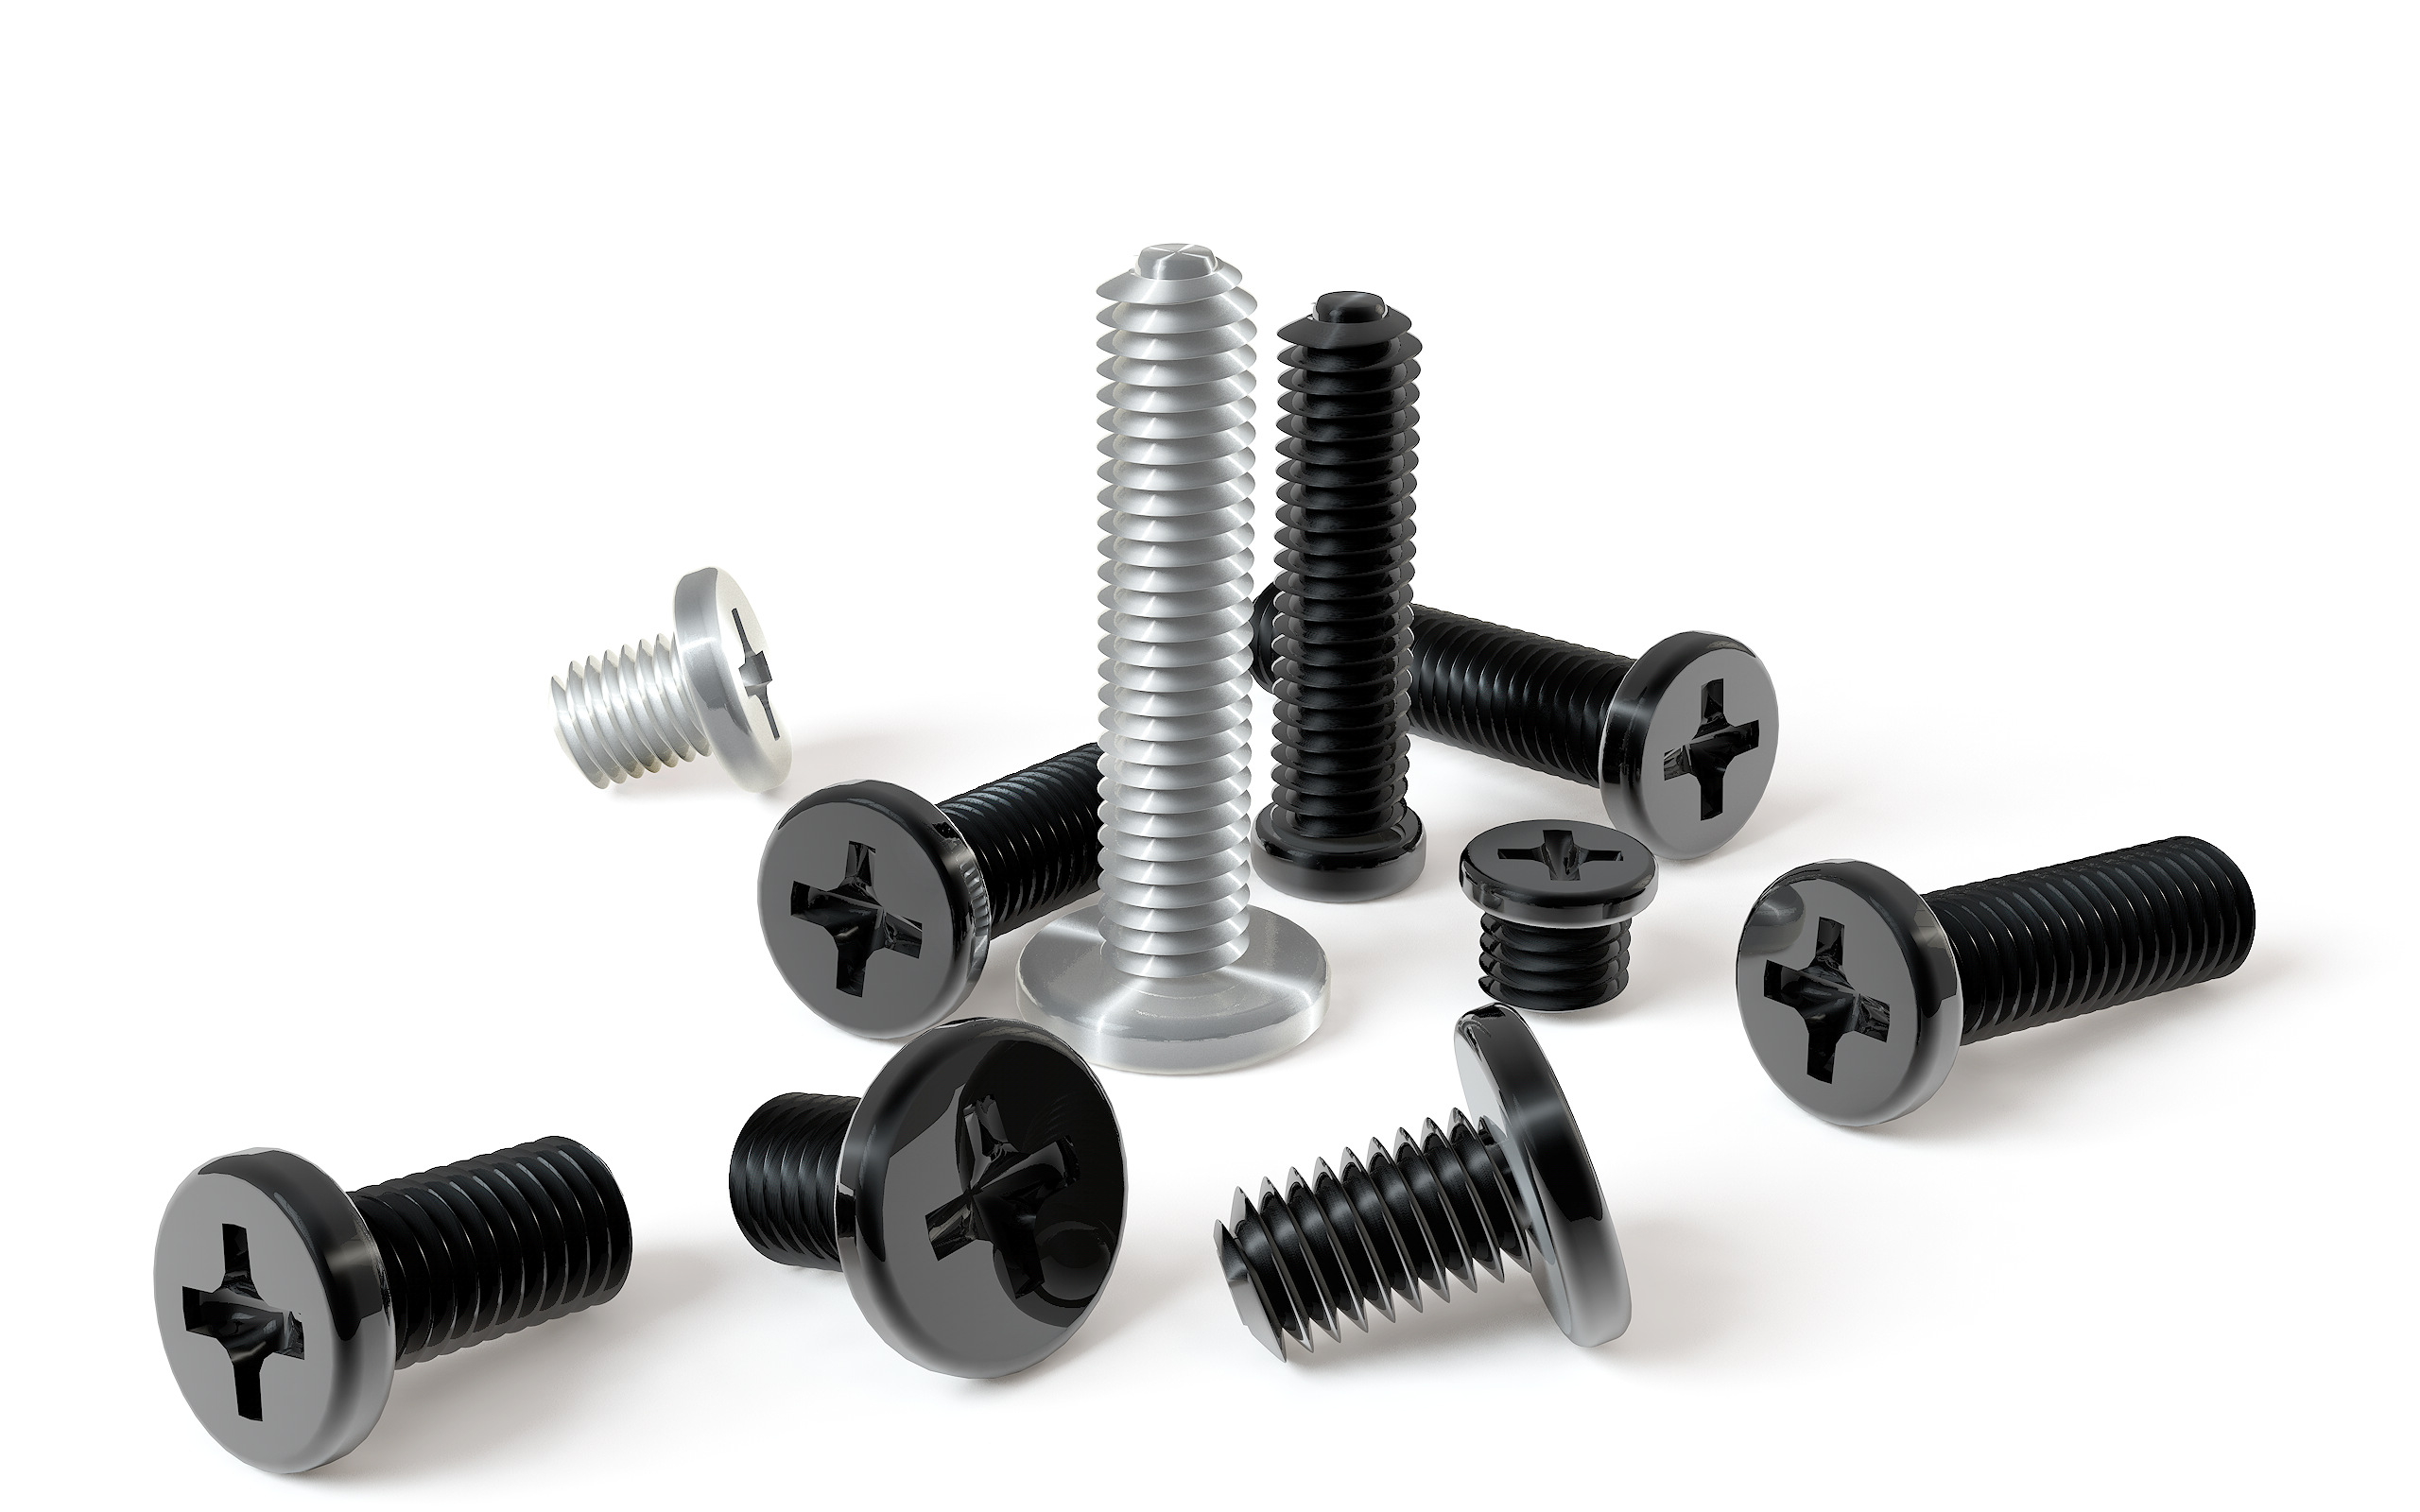 Find The Right Screws For Your Laptop  #24167 - PNG Images